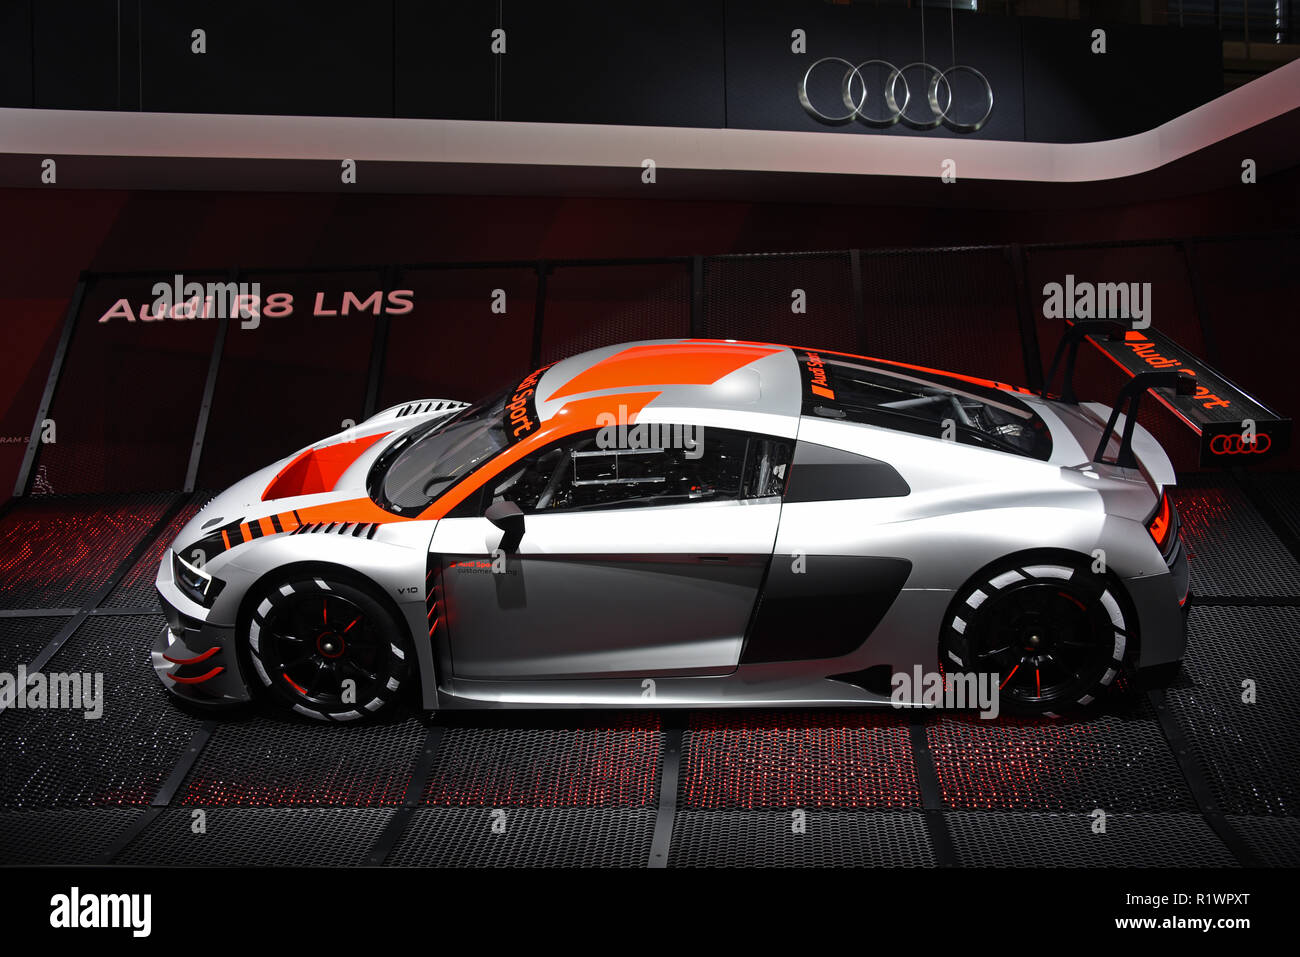 Audi Interior Stock Photos Audi Interior Stock Images Page 3 Alamy